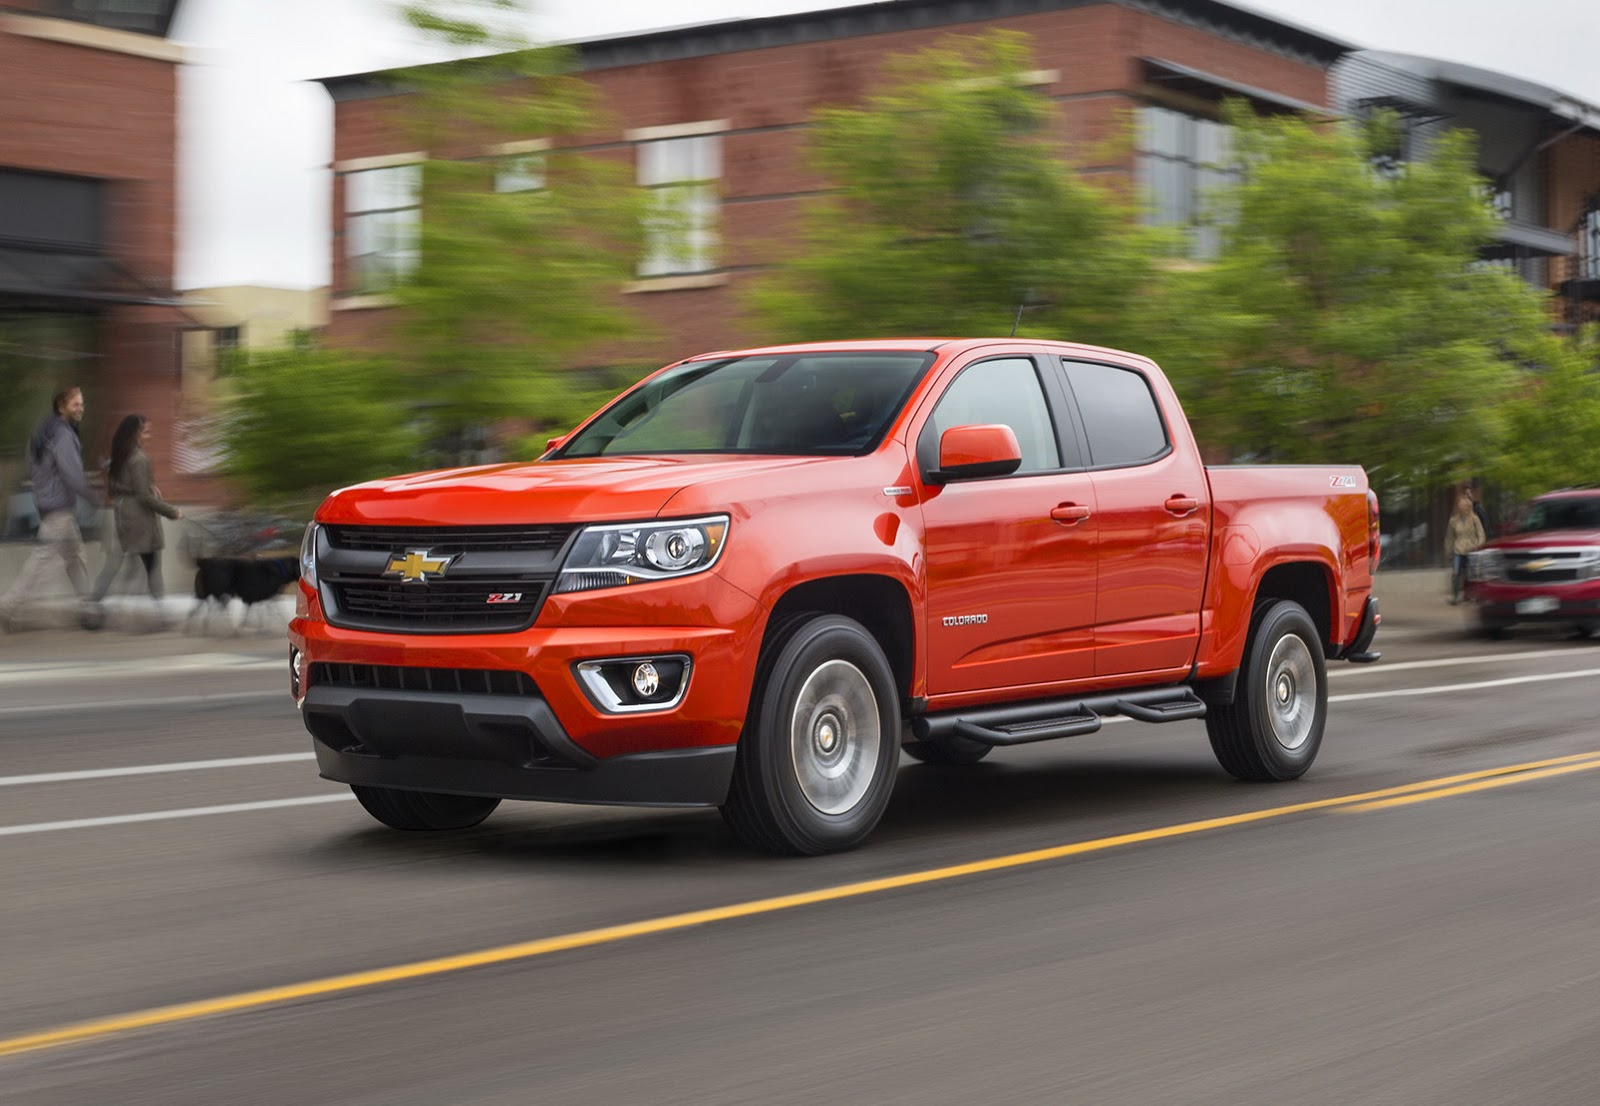 2016 chevrolet colorado diesel. Cars Review. Best American Auto & Cars Review